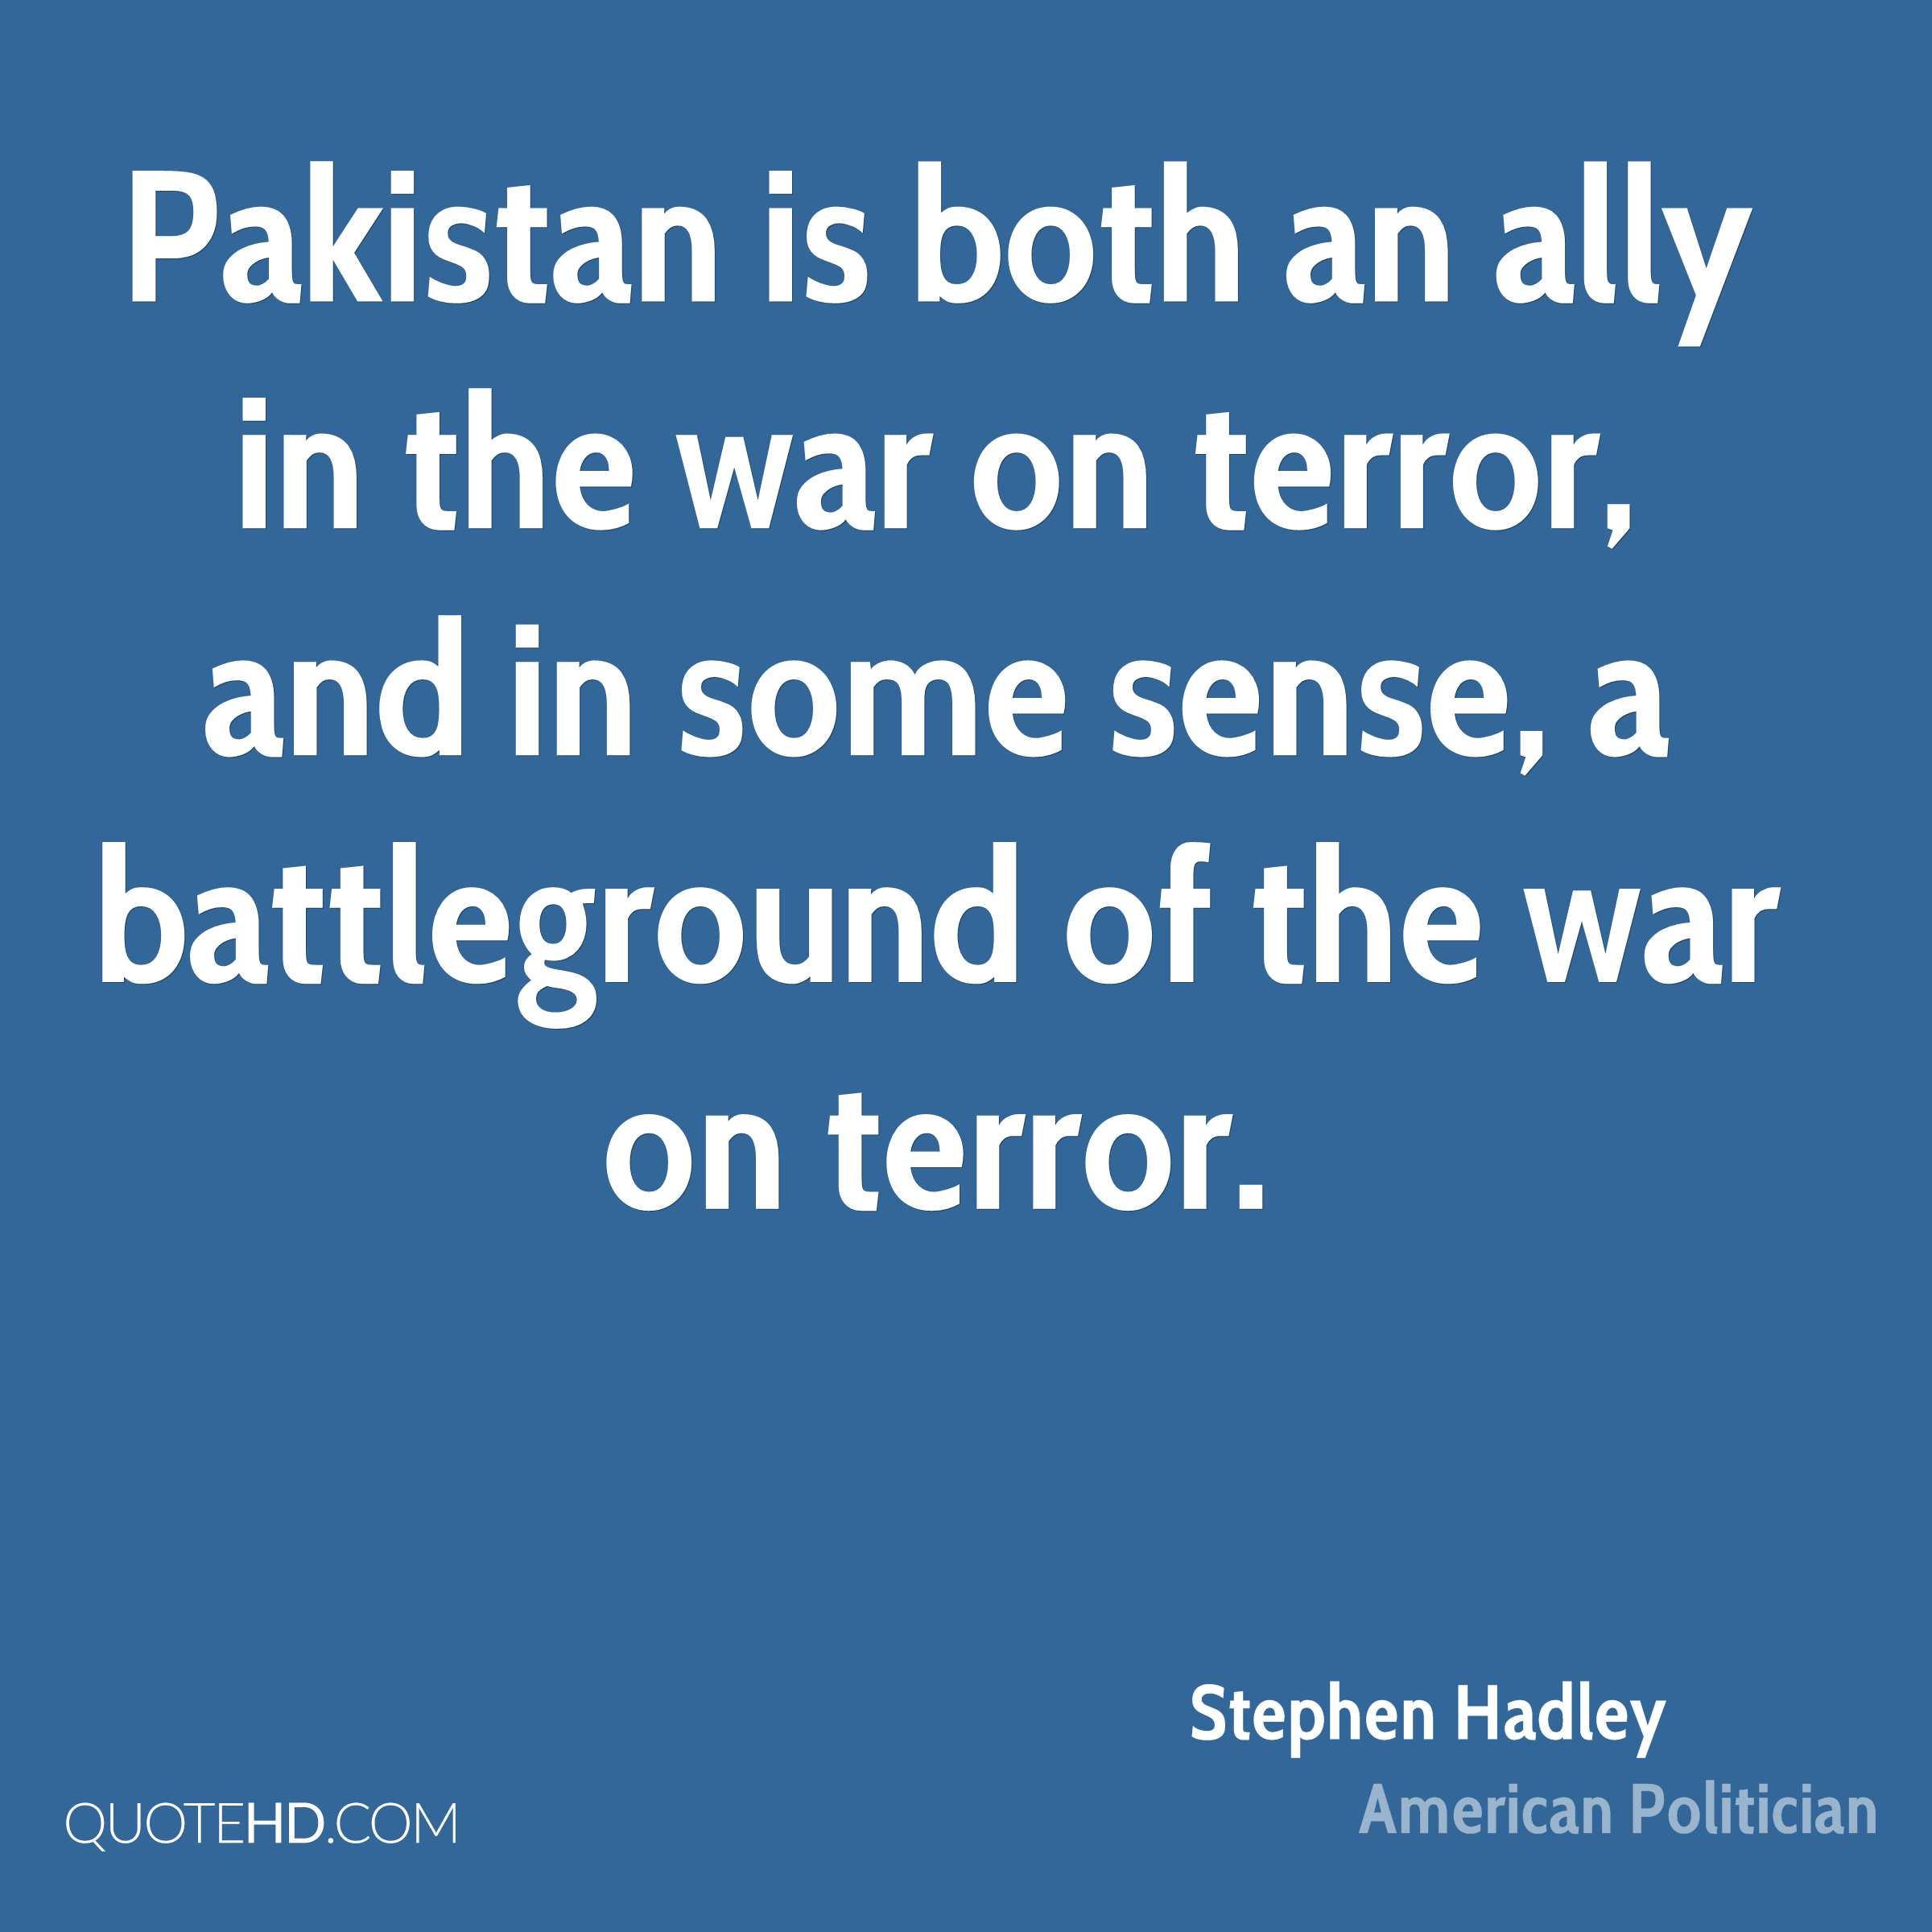 Pakistan is both an ally in the war on terror, and in some sense, a battleground of the war on terror.